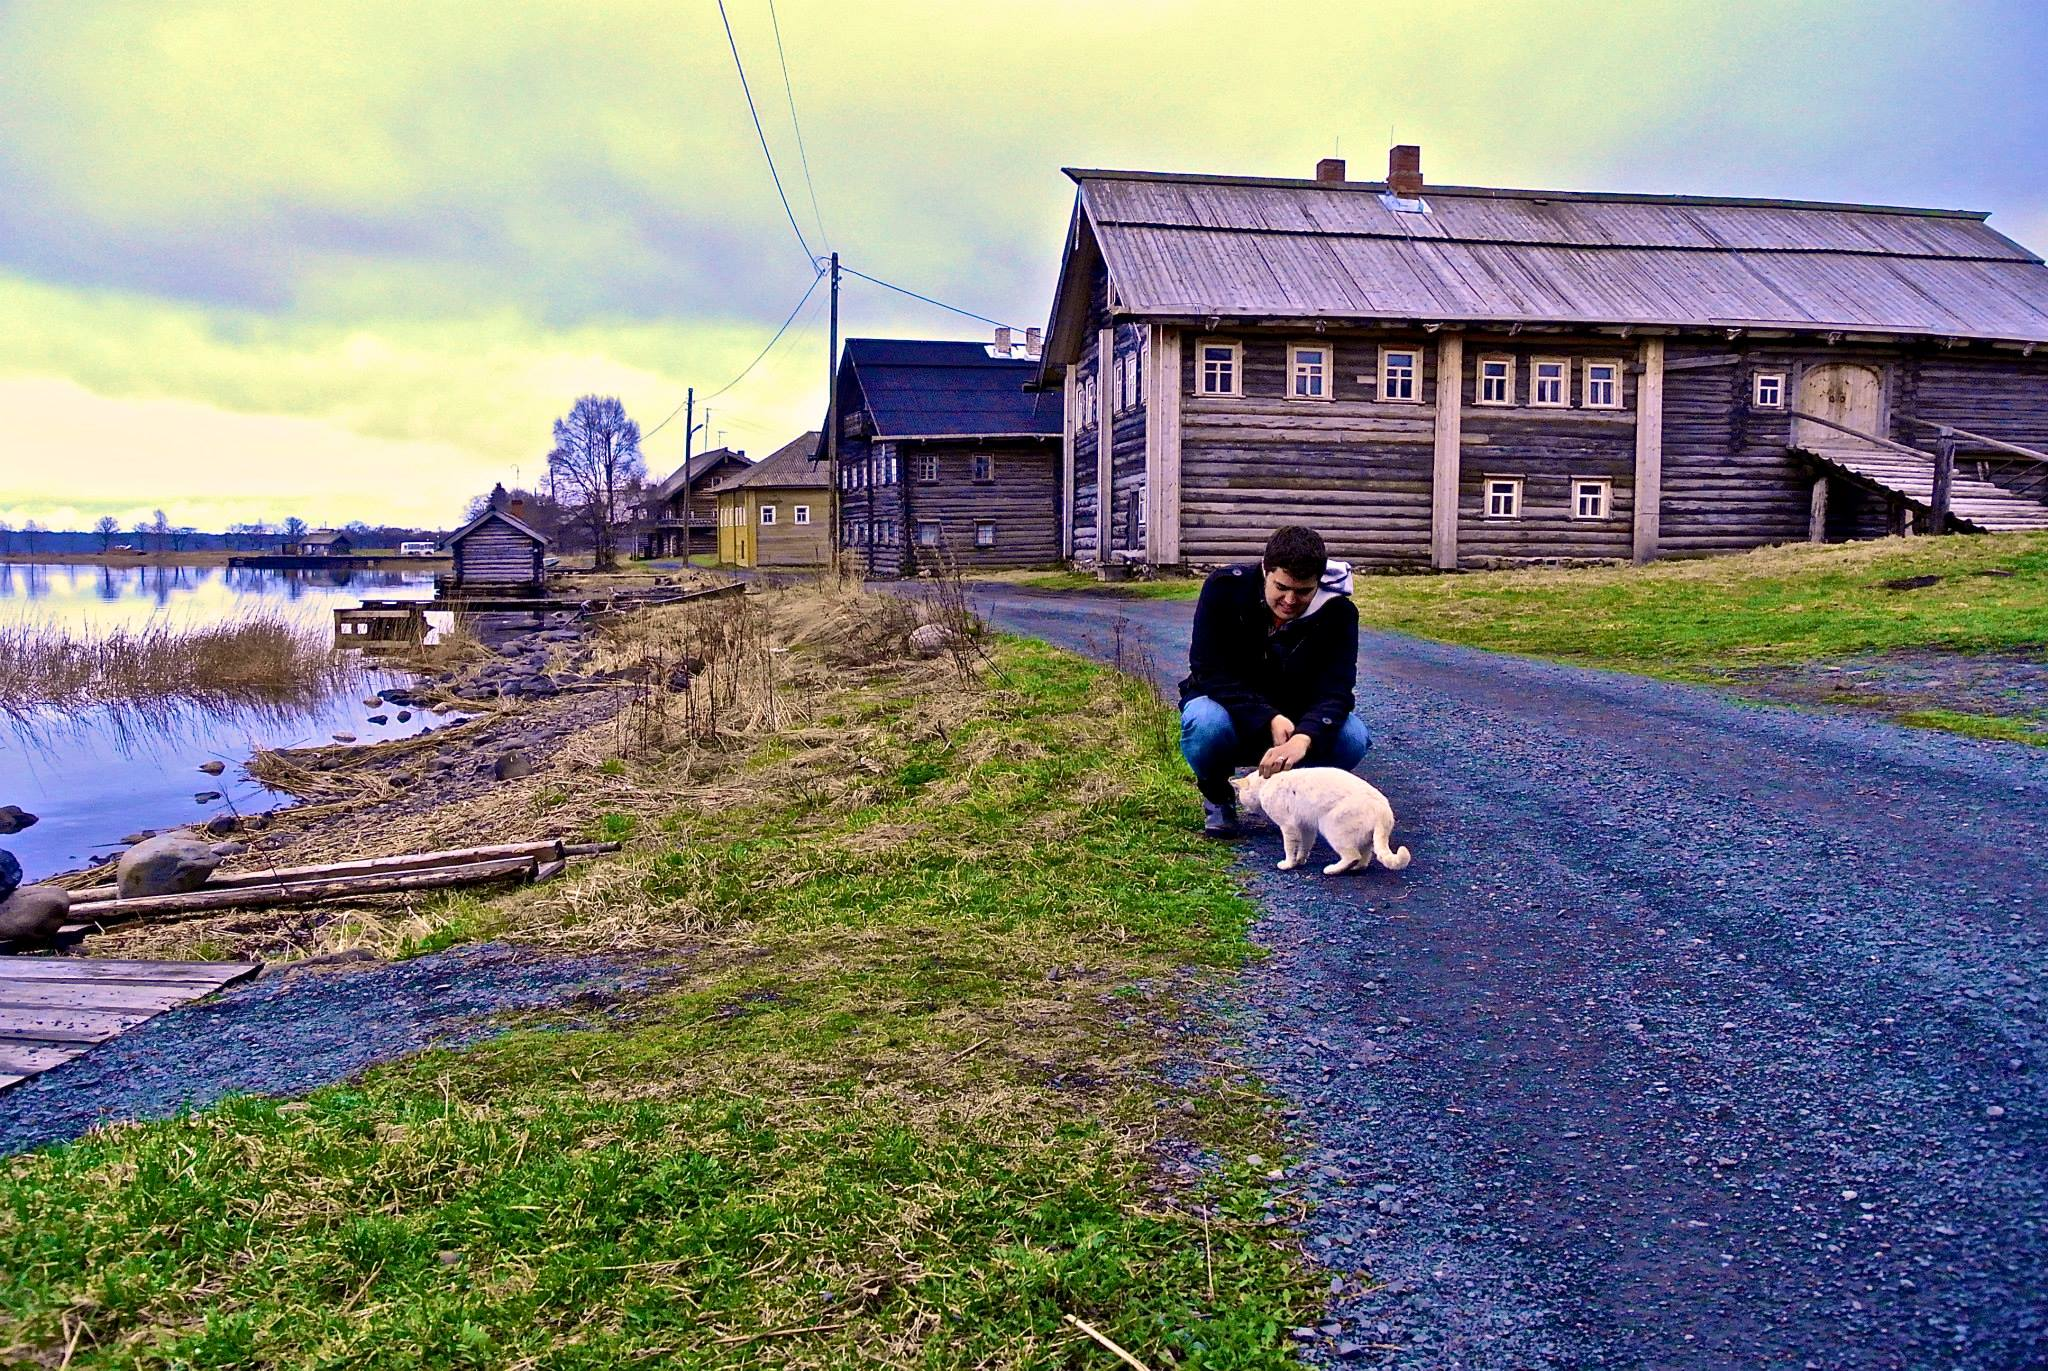 Michael being social with a cat on Kizhi island, Russia May 2013